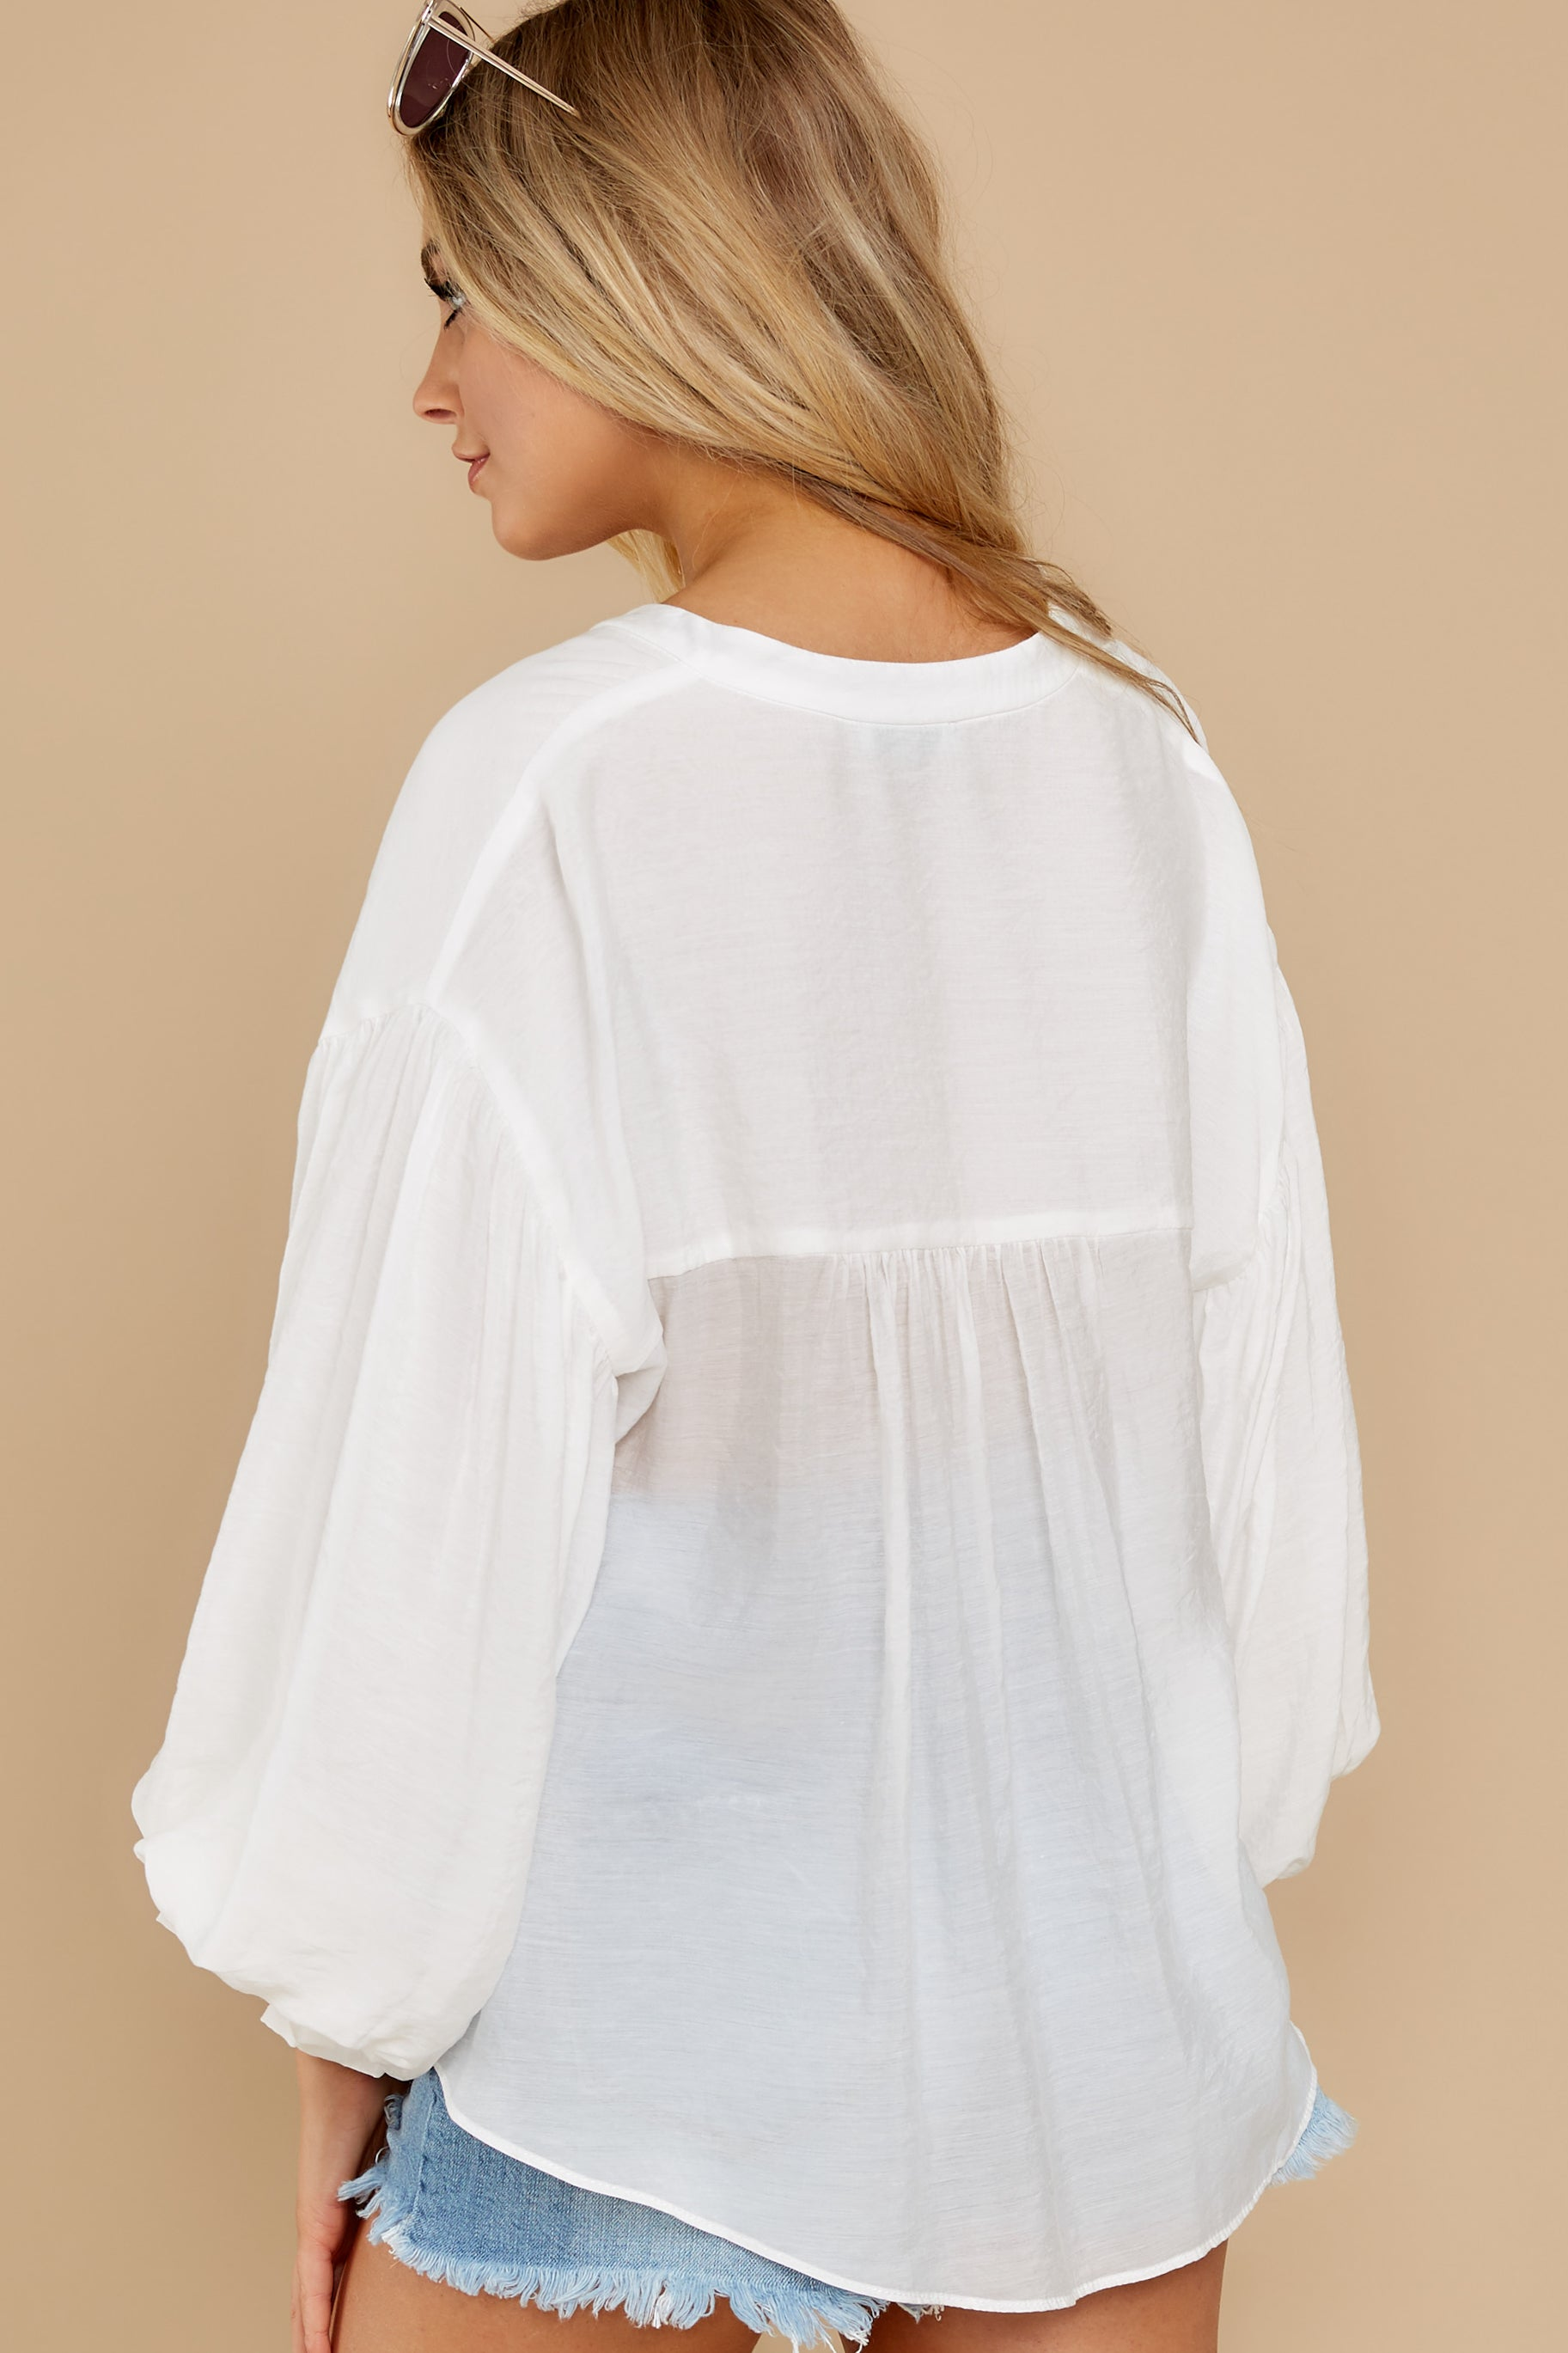 7 Whit and Whimsy White Top at reddress.com